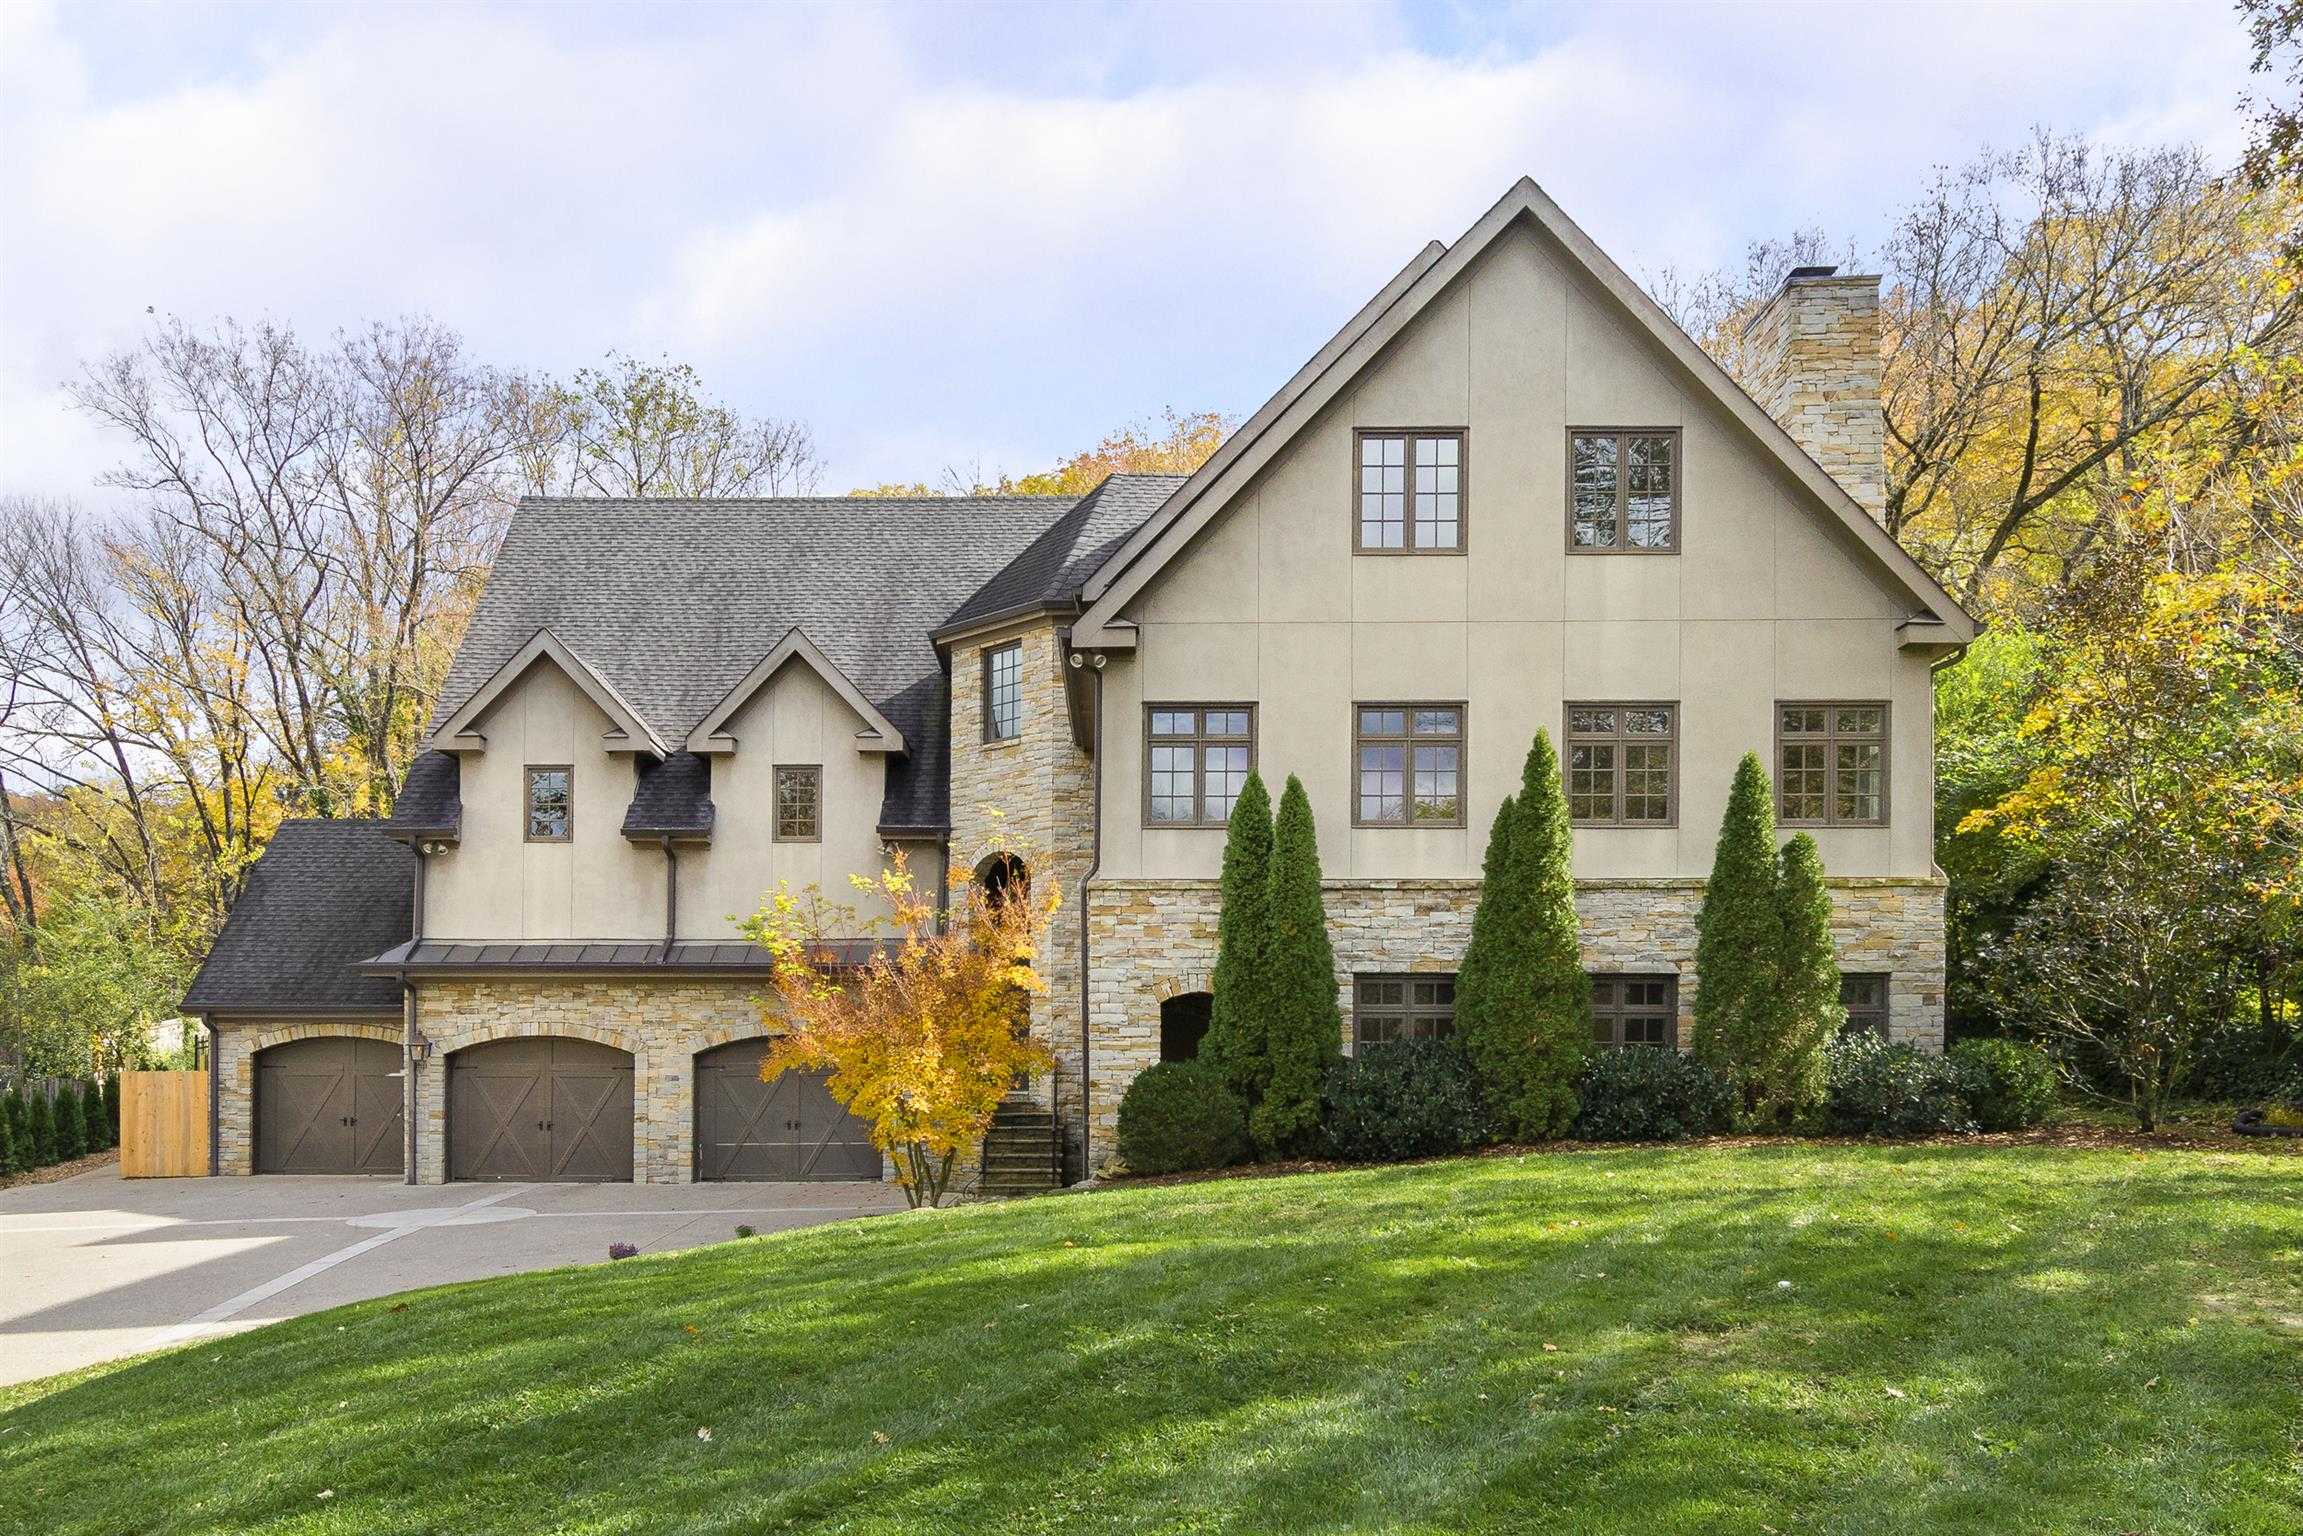 $1,695,000 - 6Br/7Ba -  for Sale in Forest Hills/ Green Hills, Nashville